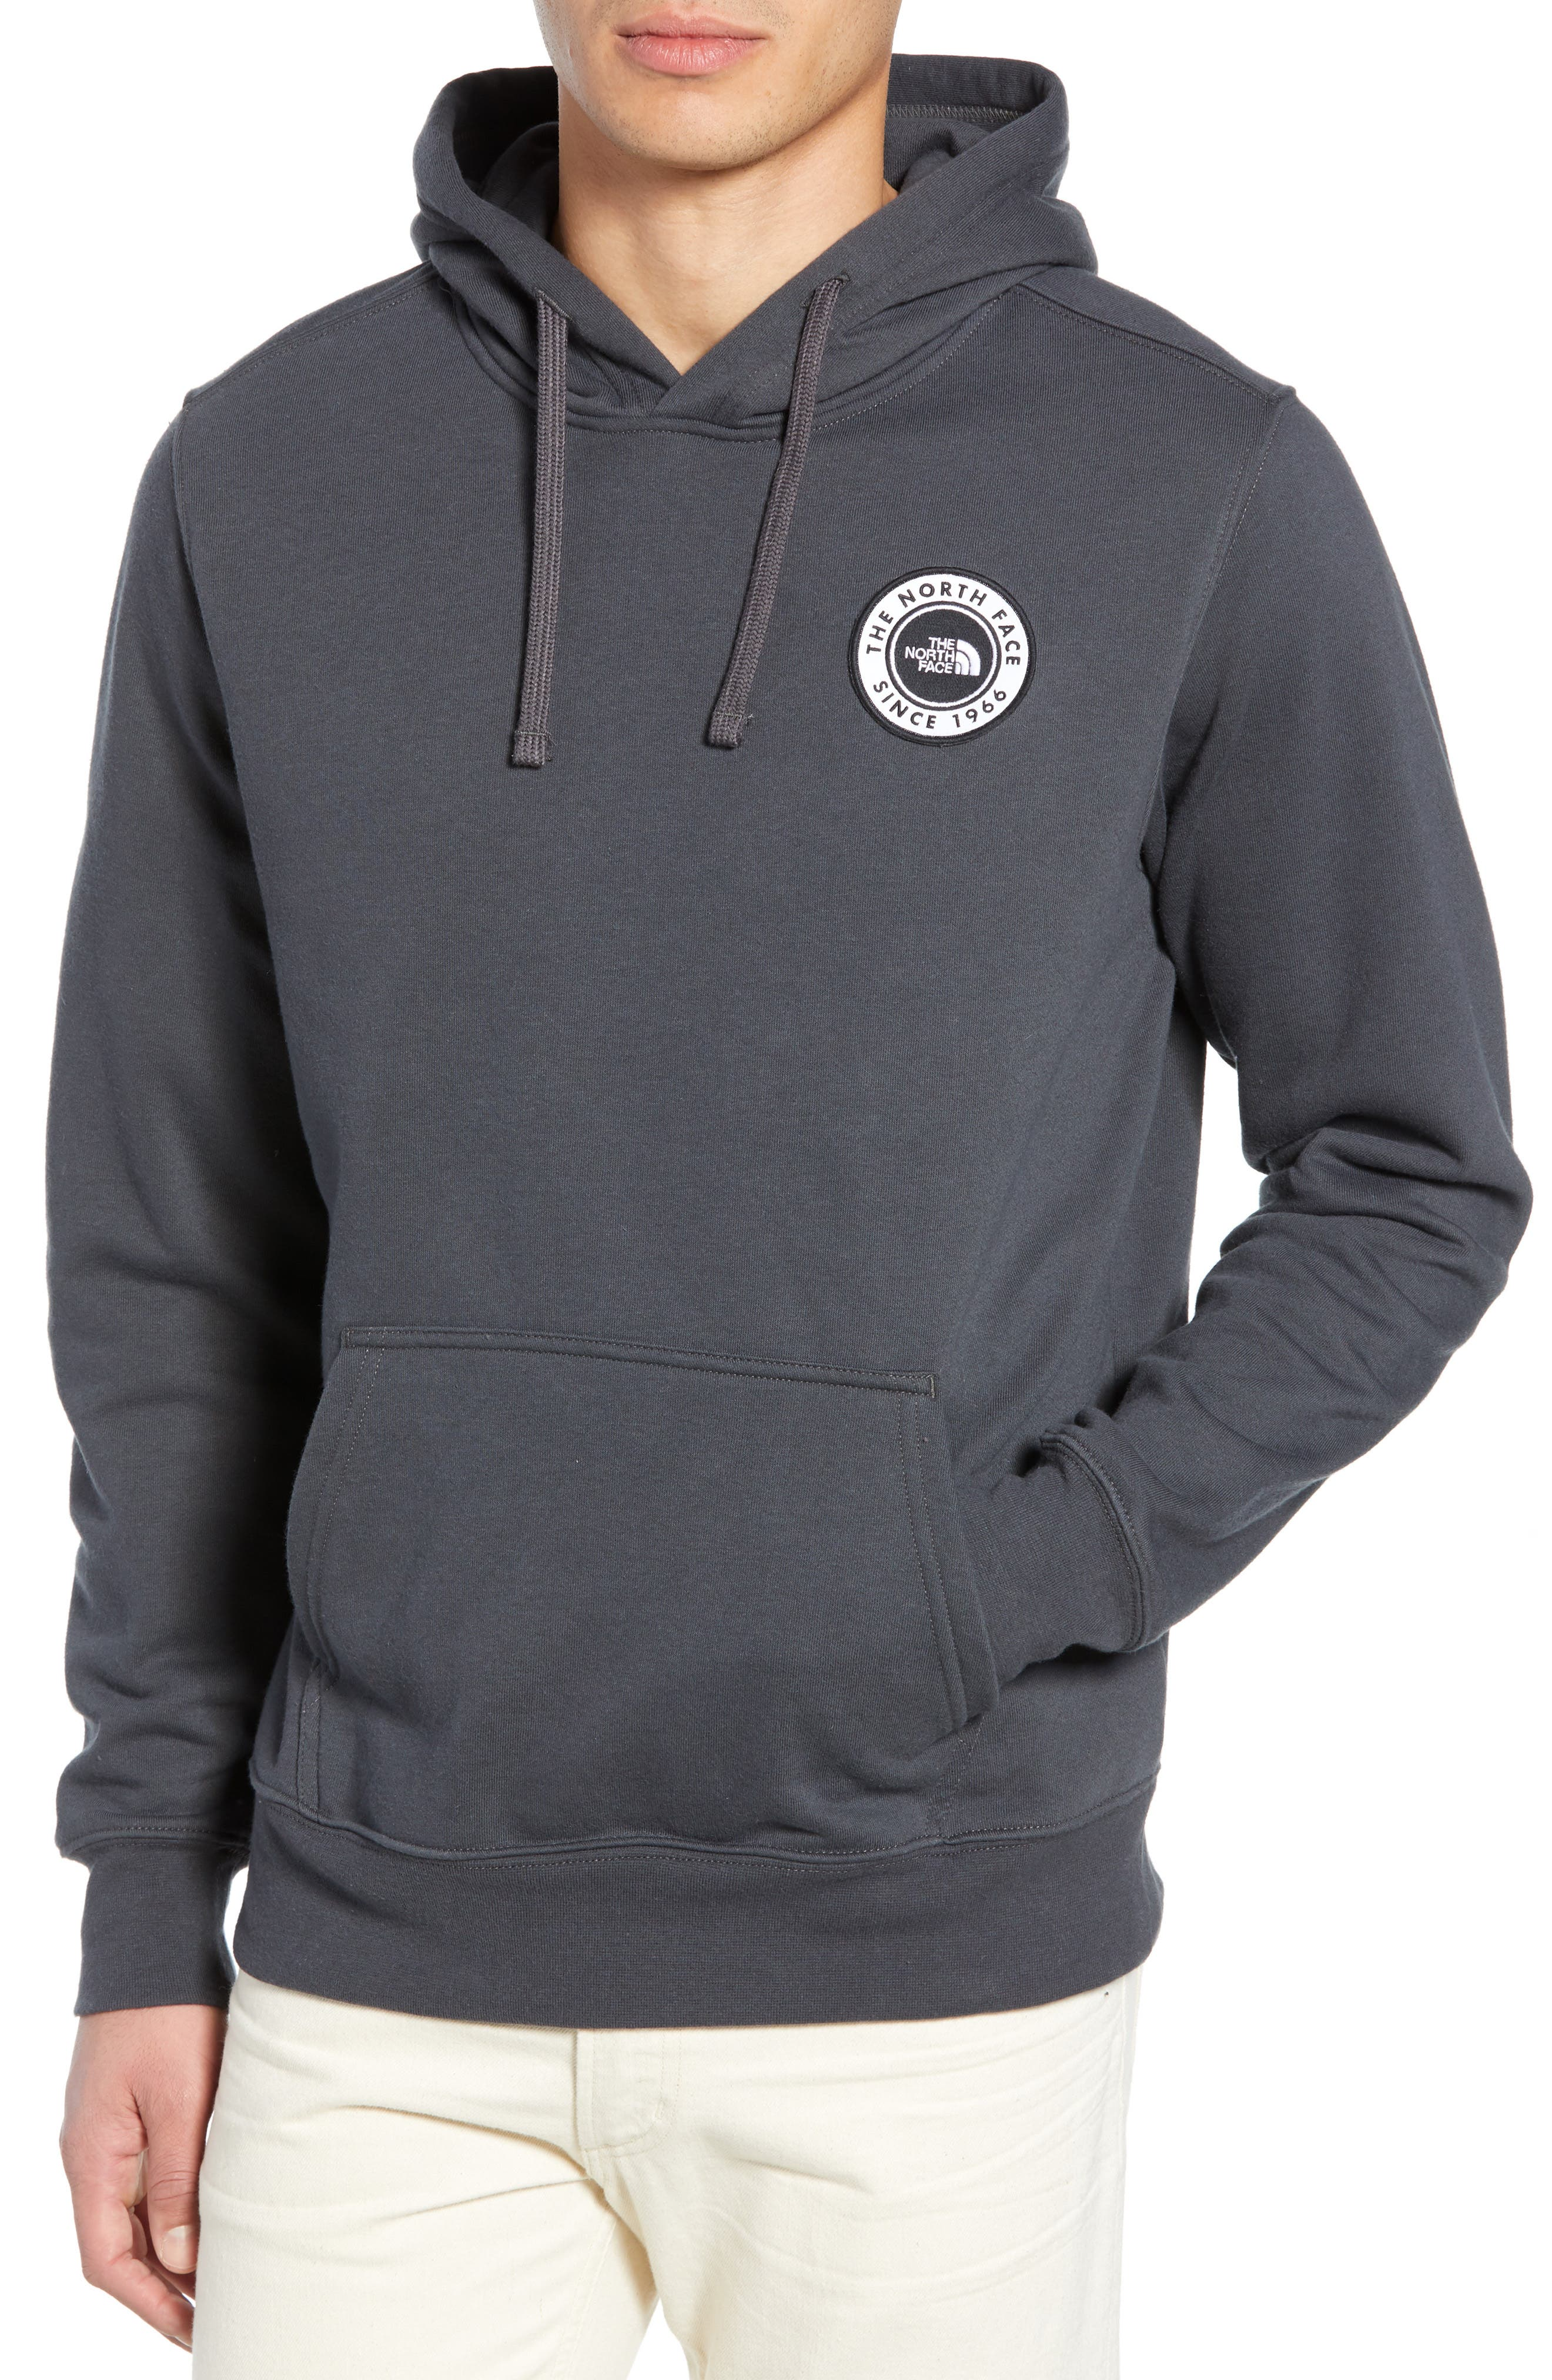 THE NORTH FACE, Bottle Source Pullover Hoodie, Main thumbnail 1, color, ASPHALT GREY